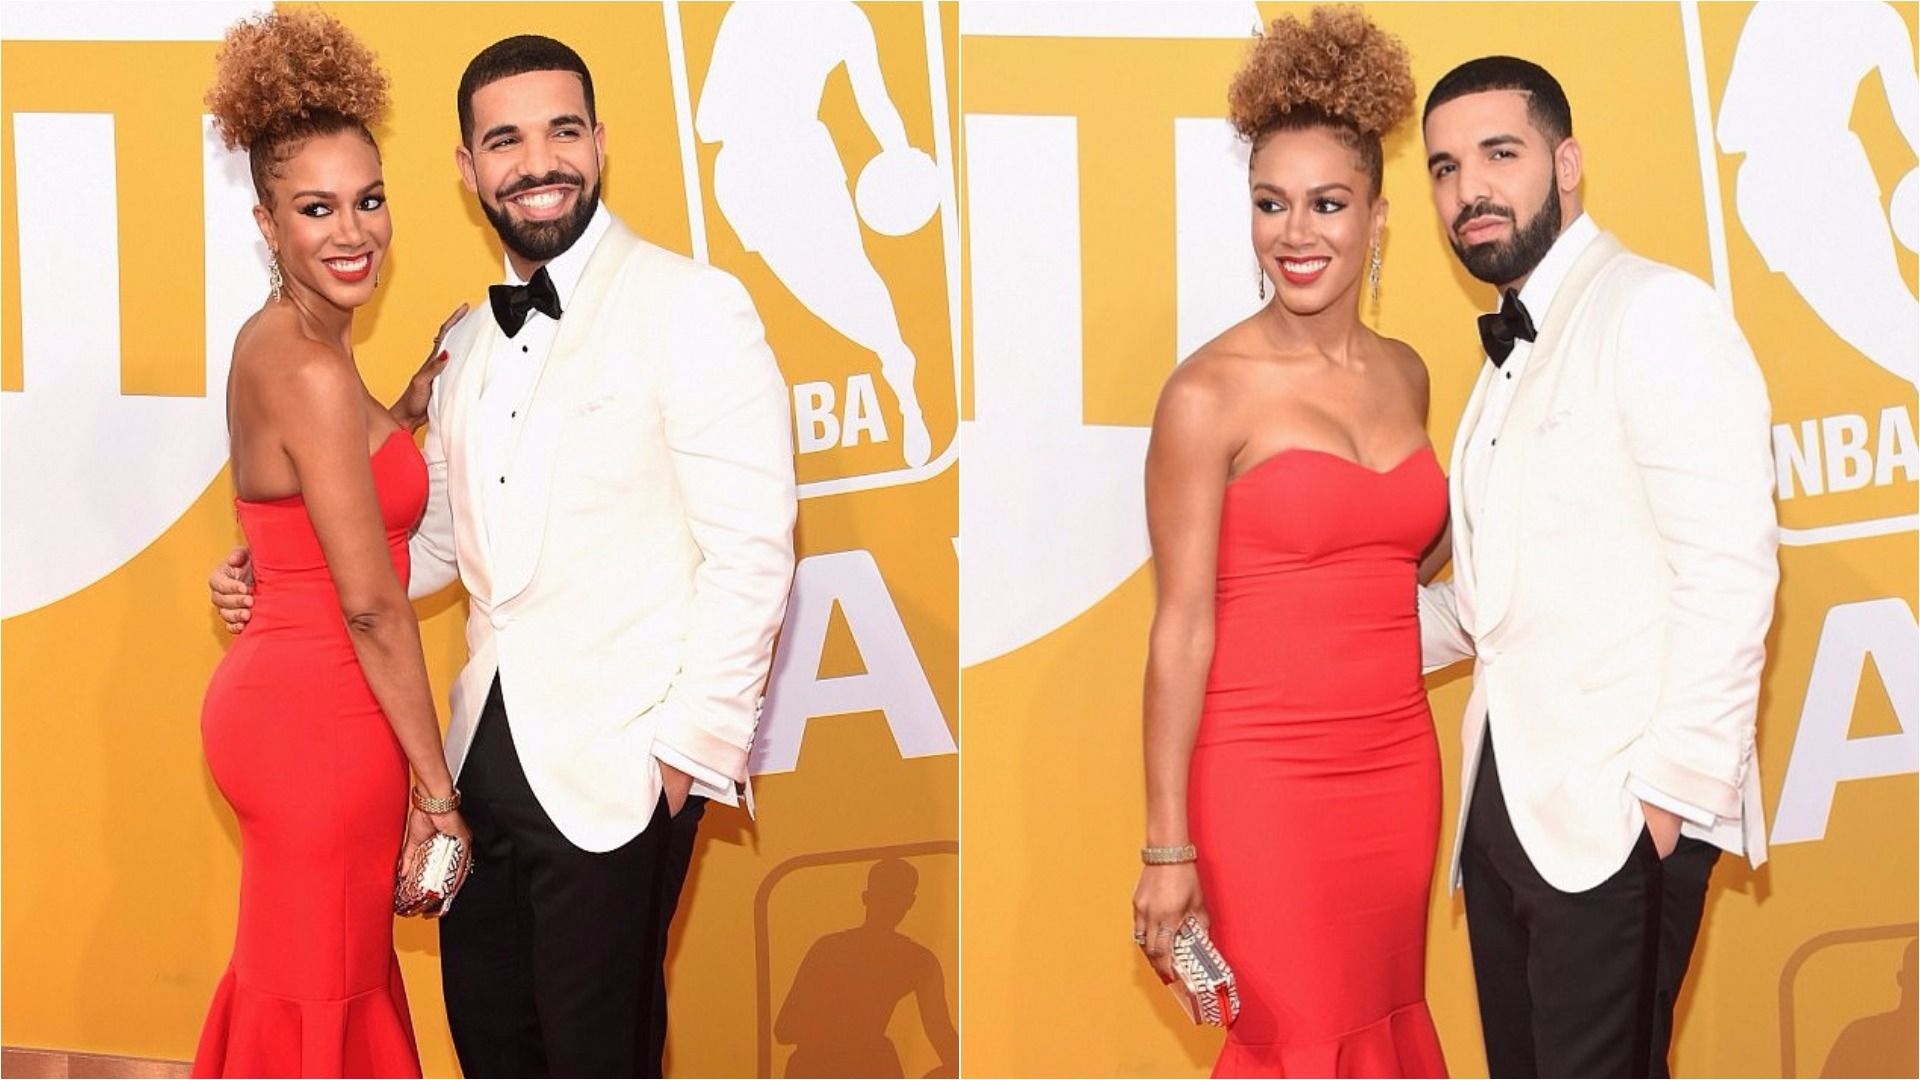 Drake brought Nigerian Basketball analyst Rosalyn Gold-Onwude as his date to the NBA Awards